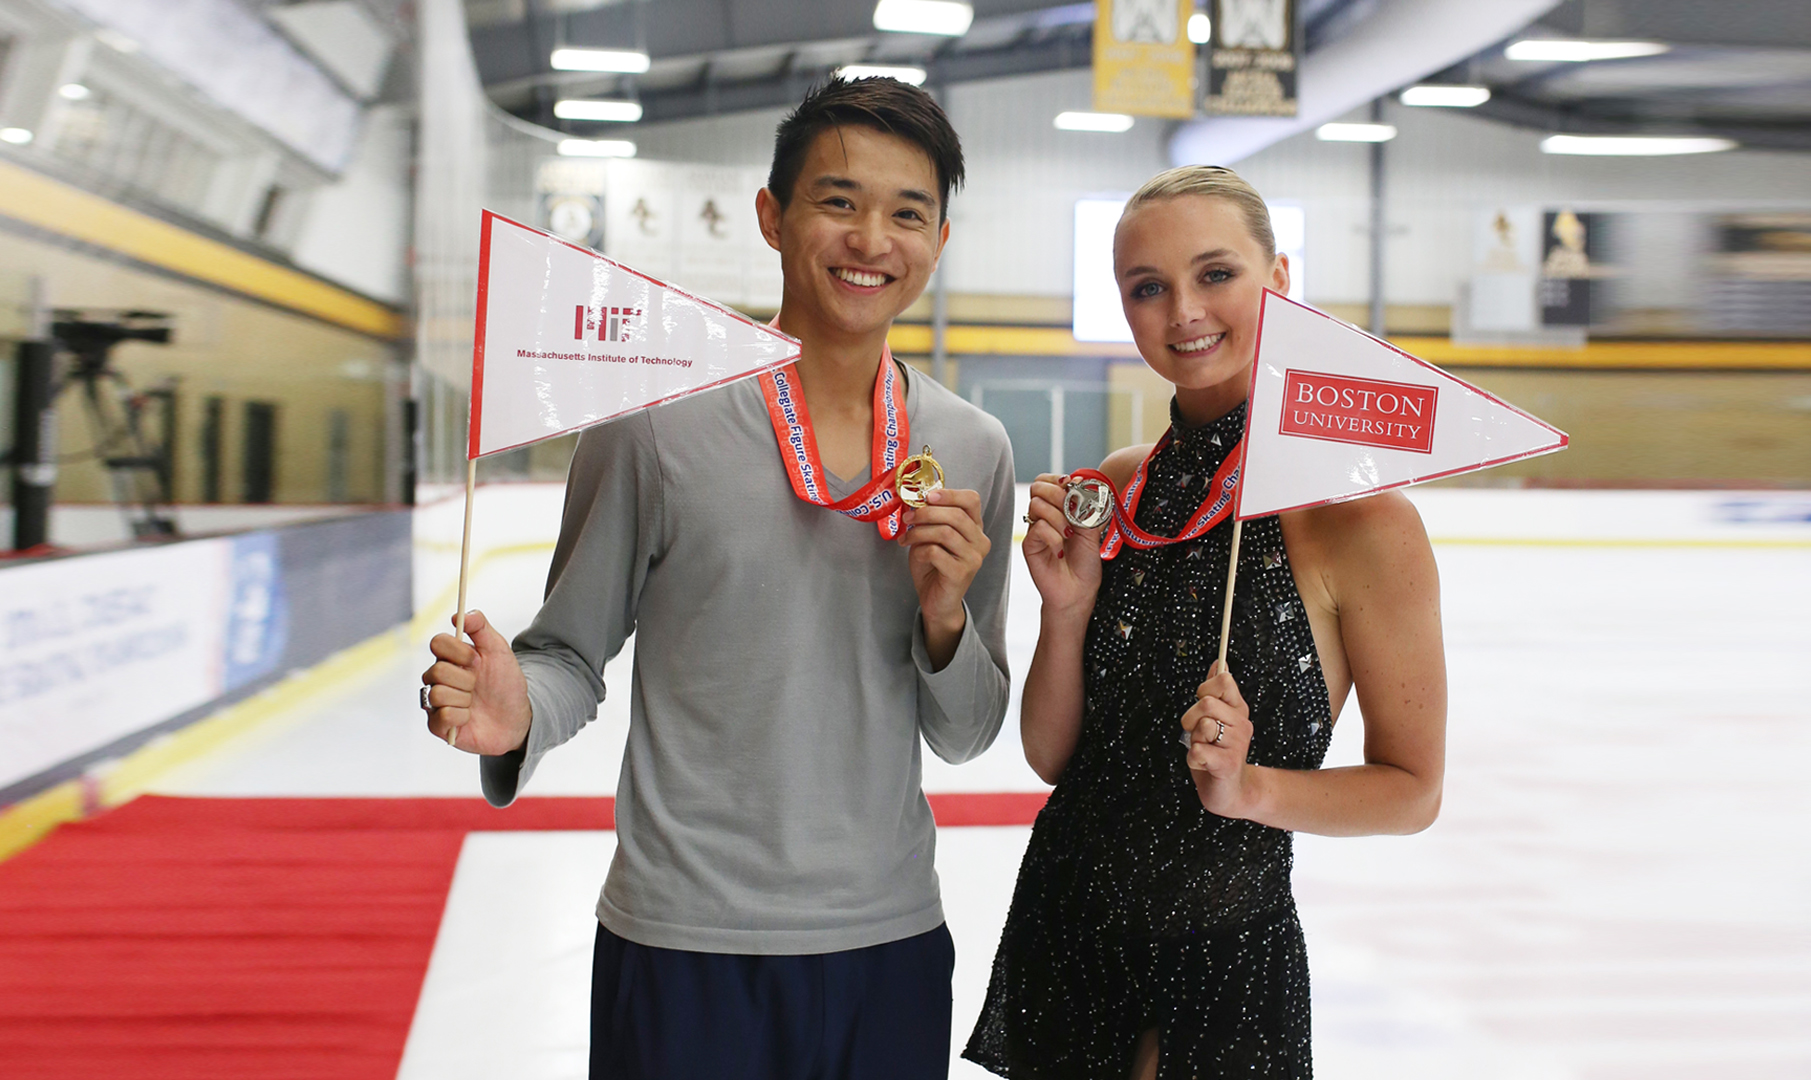 Skaters pose with awards at the U.S. Collegiate Figure Skating Championships.